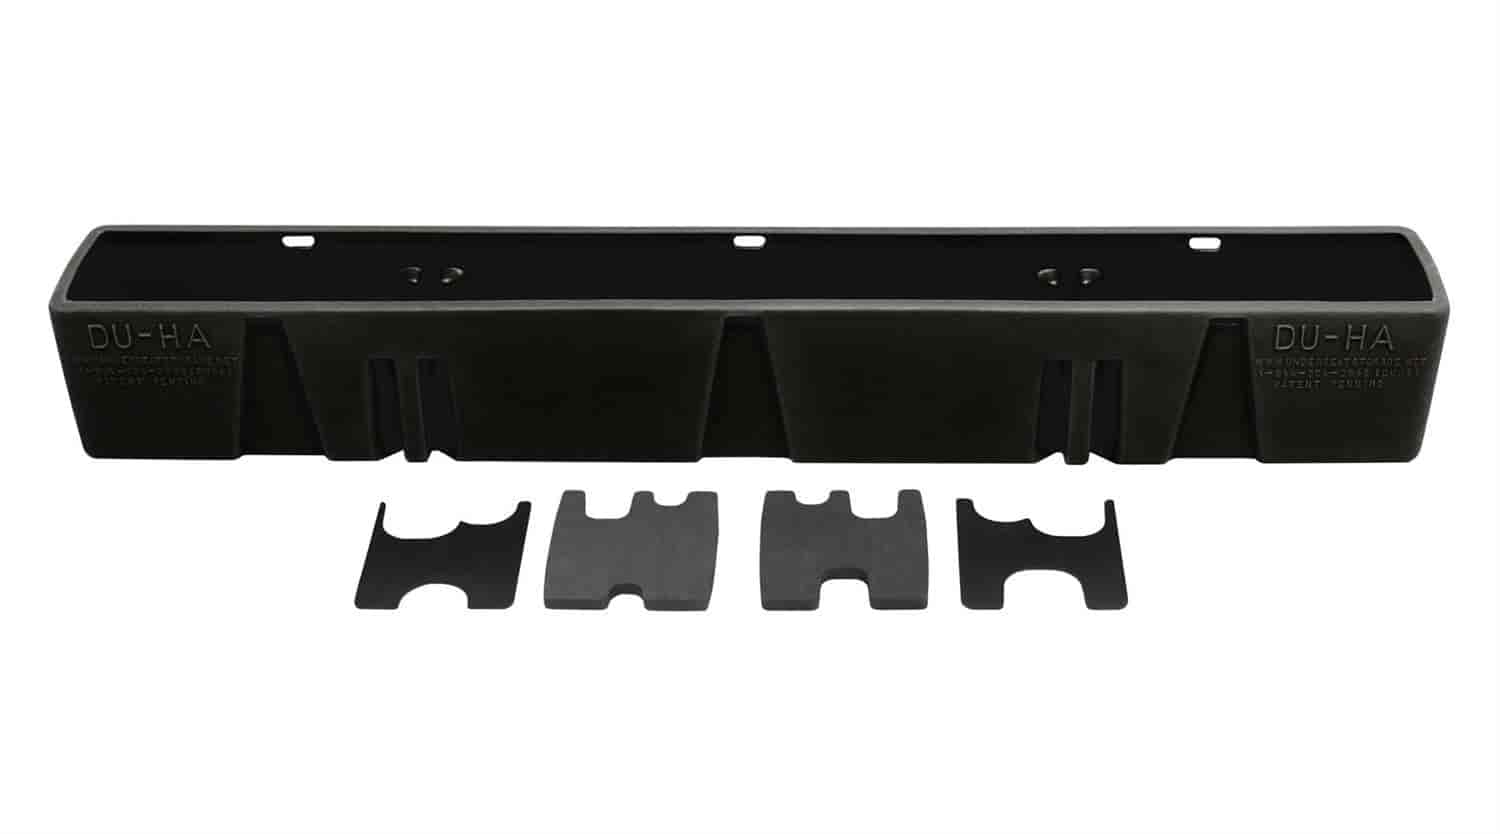 DU-HA 20025 - DU-HA Behind-the-Seat Storage Units for Trucks